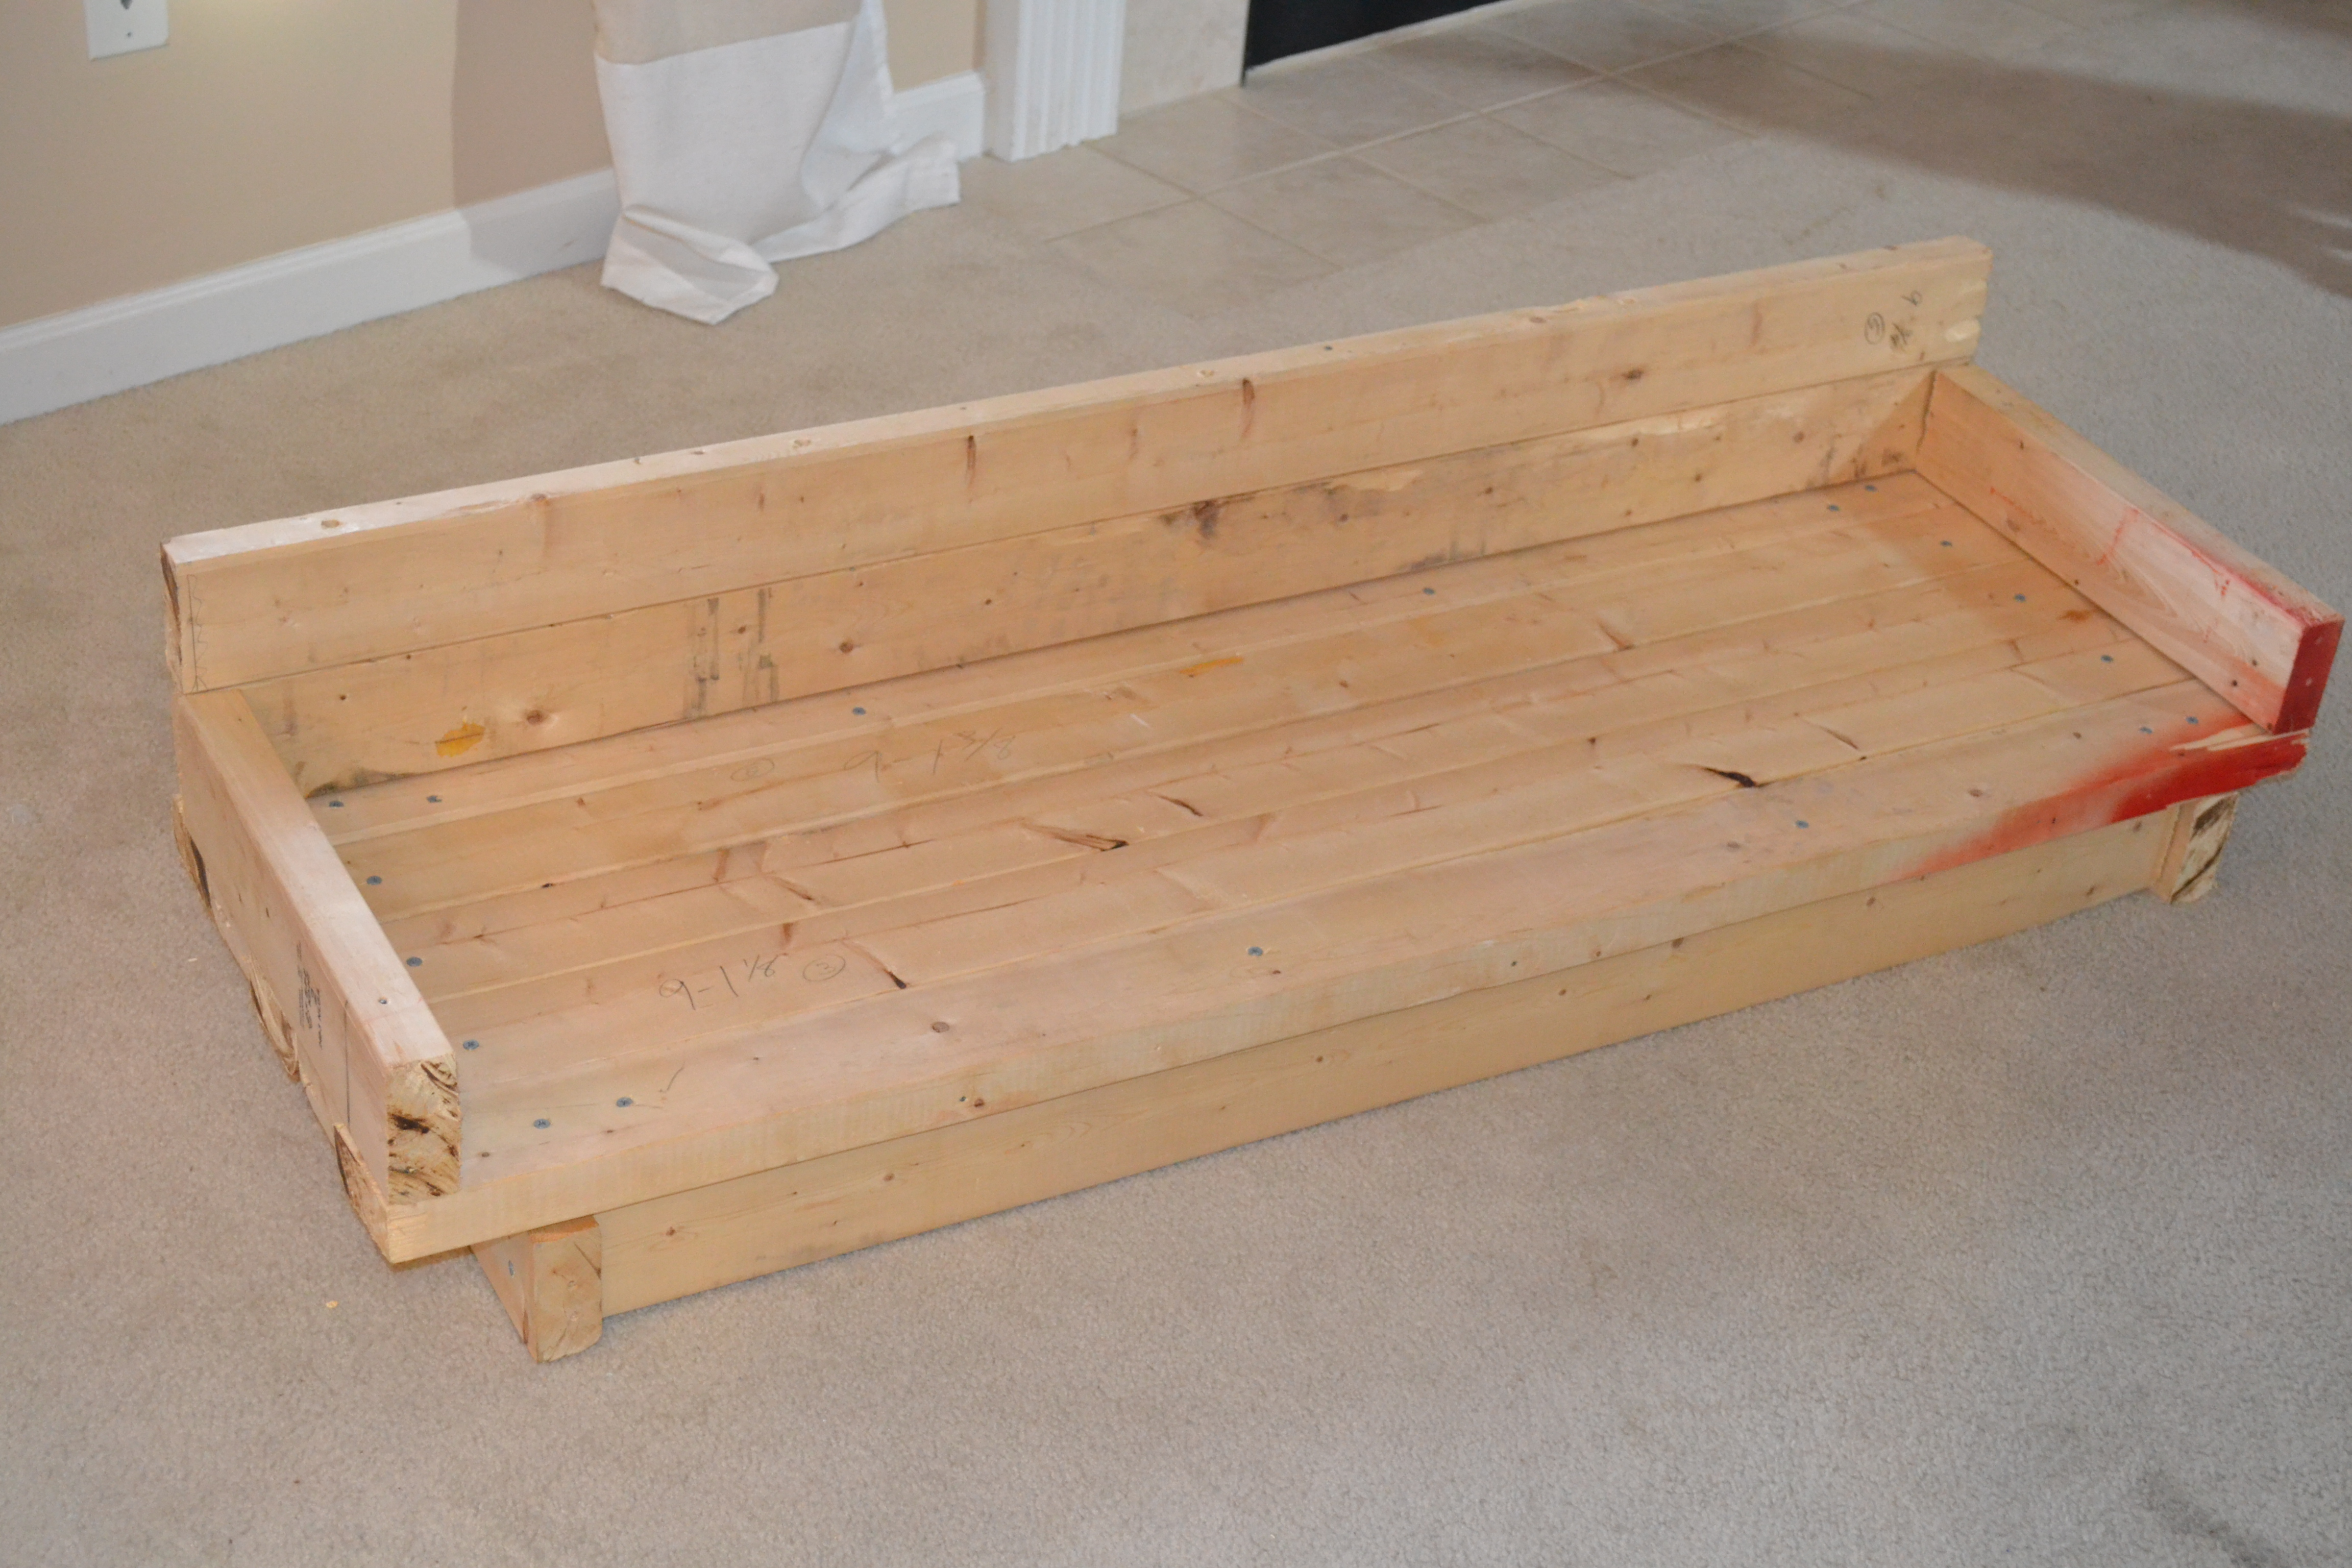 Daybed frame wooden - Then